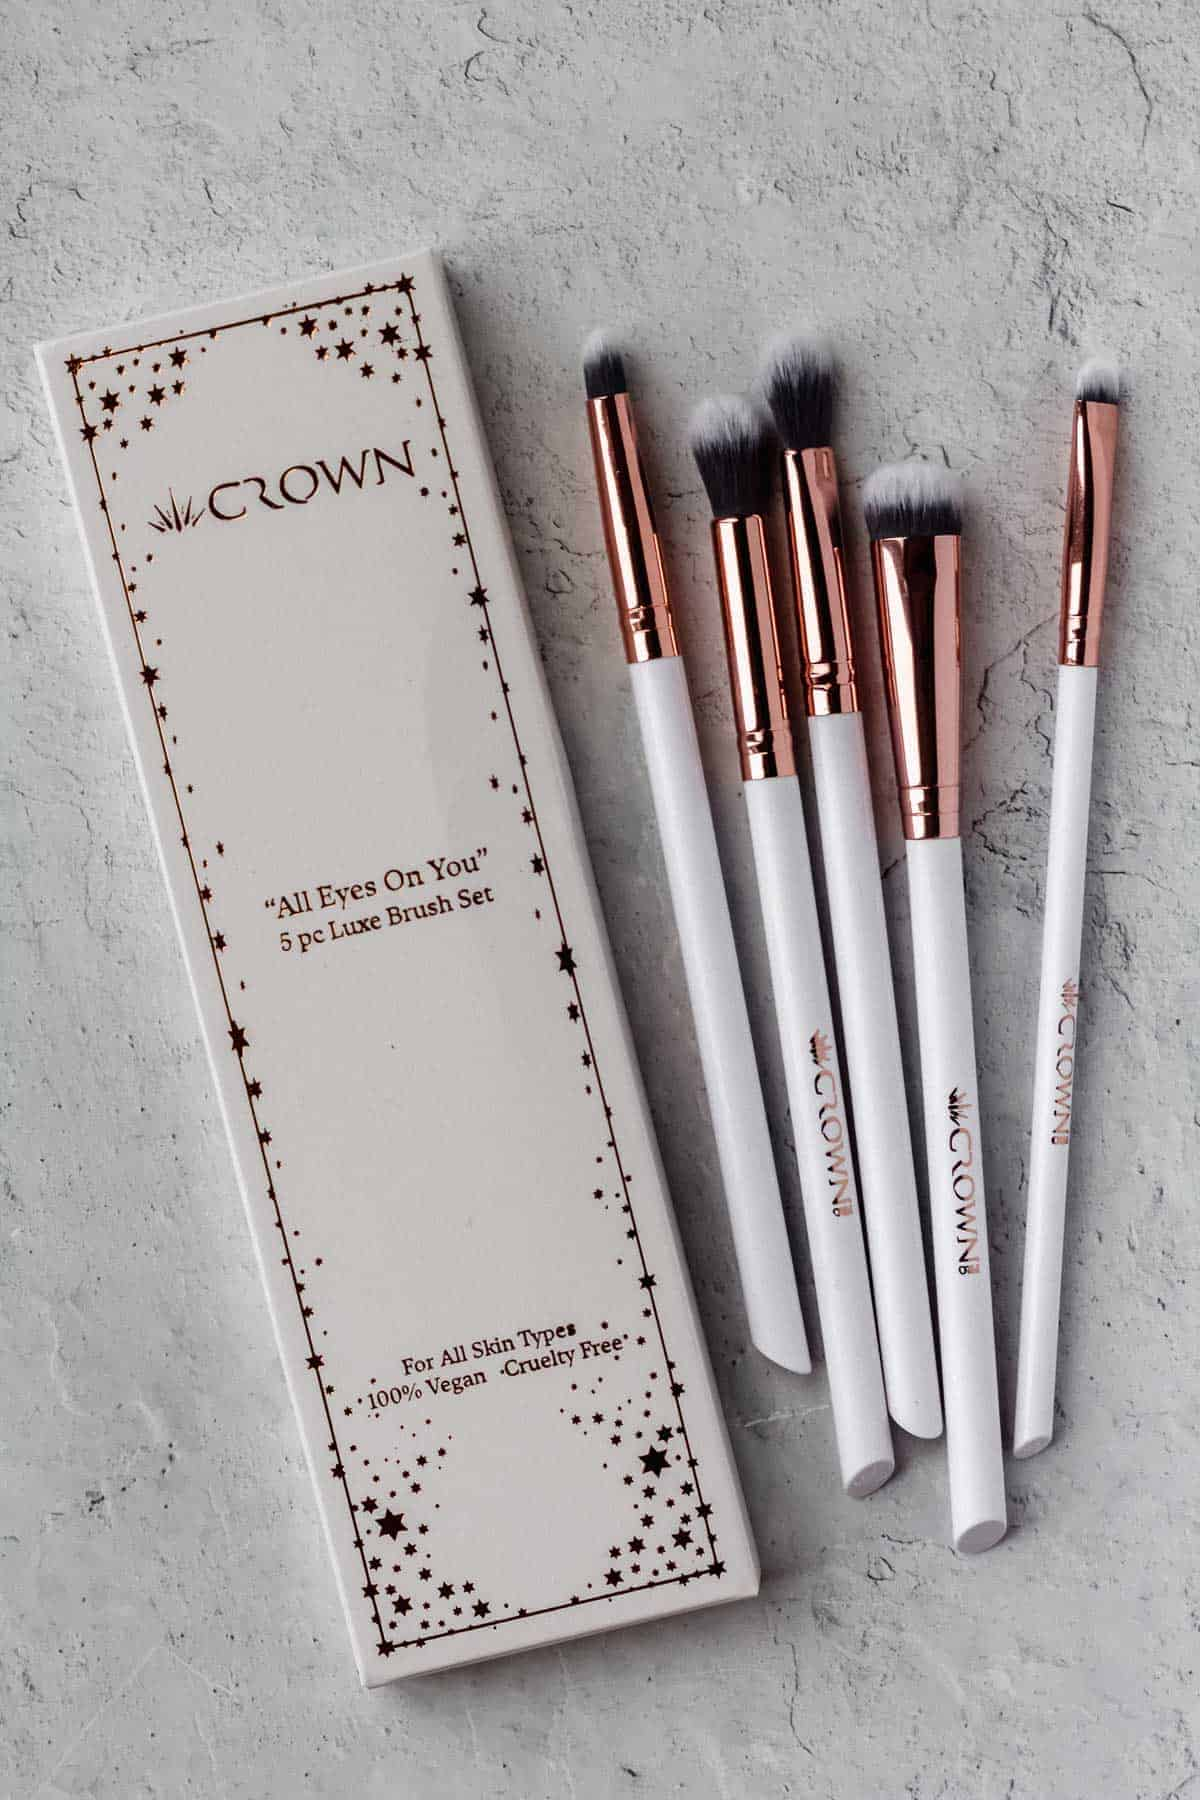 Crown eyeshadow brush set and box on a white background